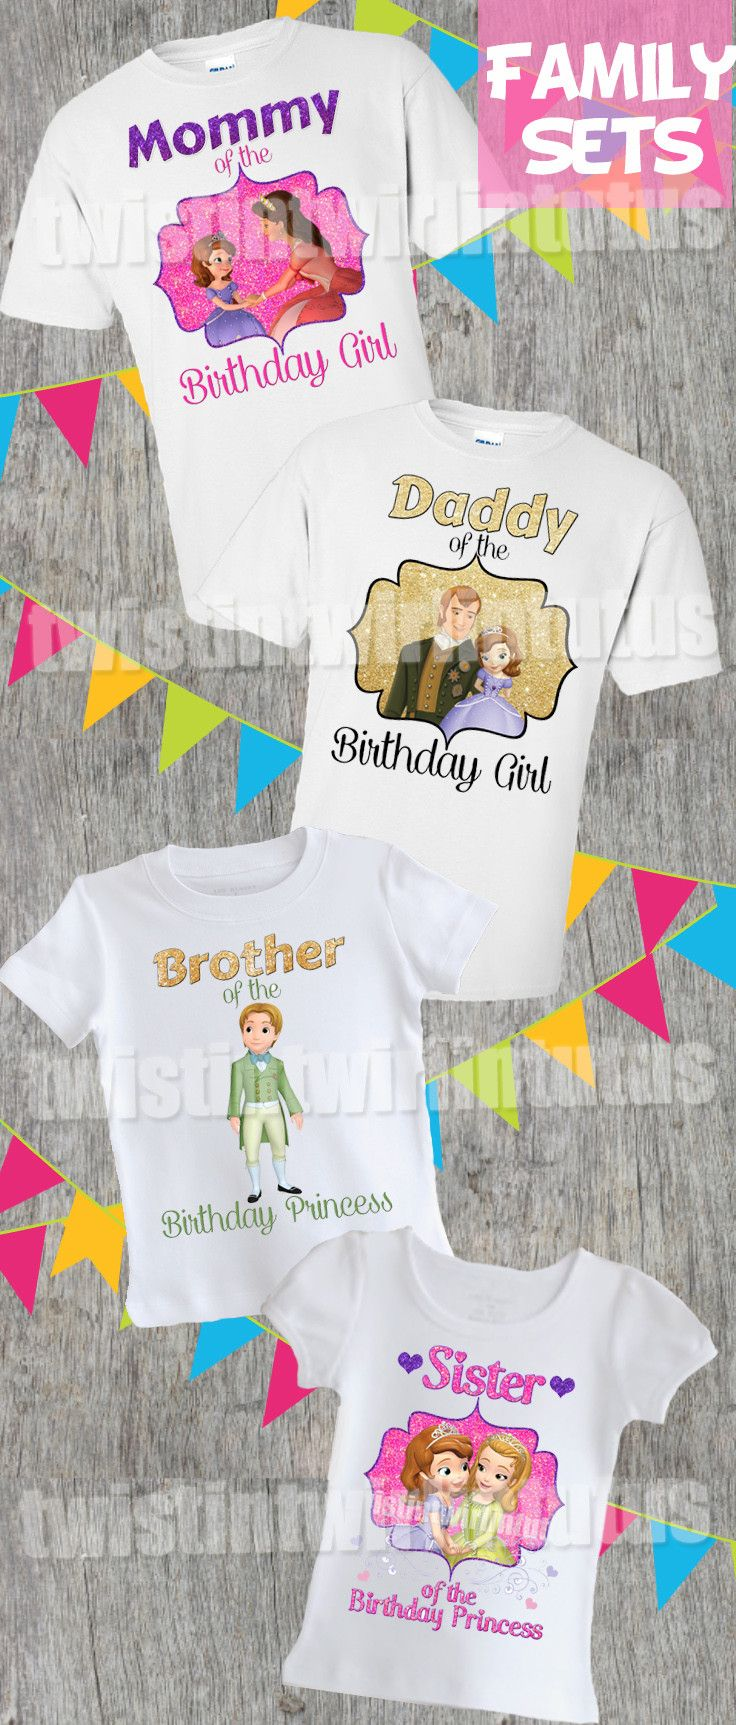 0999d92c2 Sofia the First Family Shirt Set | Sofia the First Birthday Shirts | Sofia  the First Birthday Party Ideas | Princess Sofia Family Shirts | Princess  Sofia ...